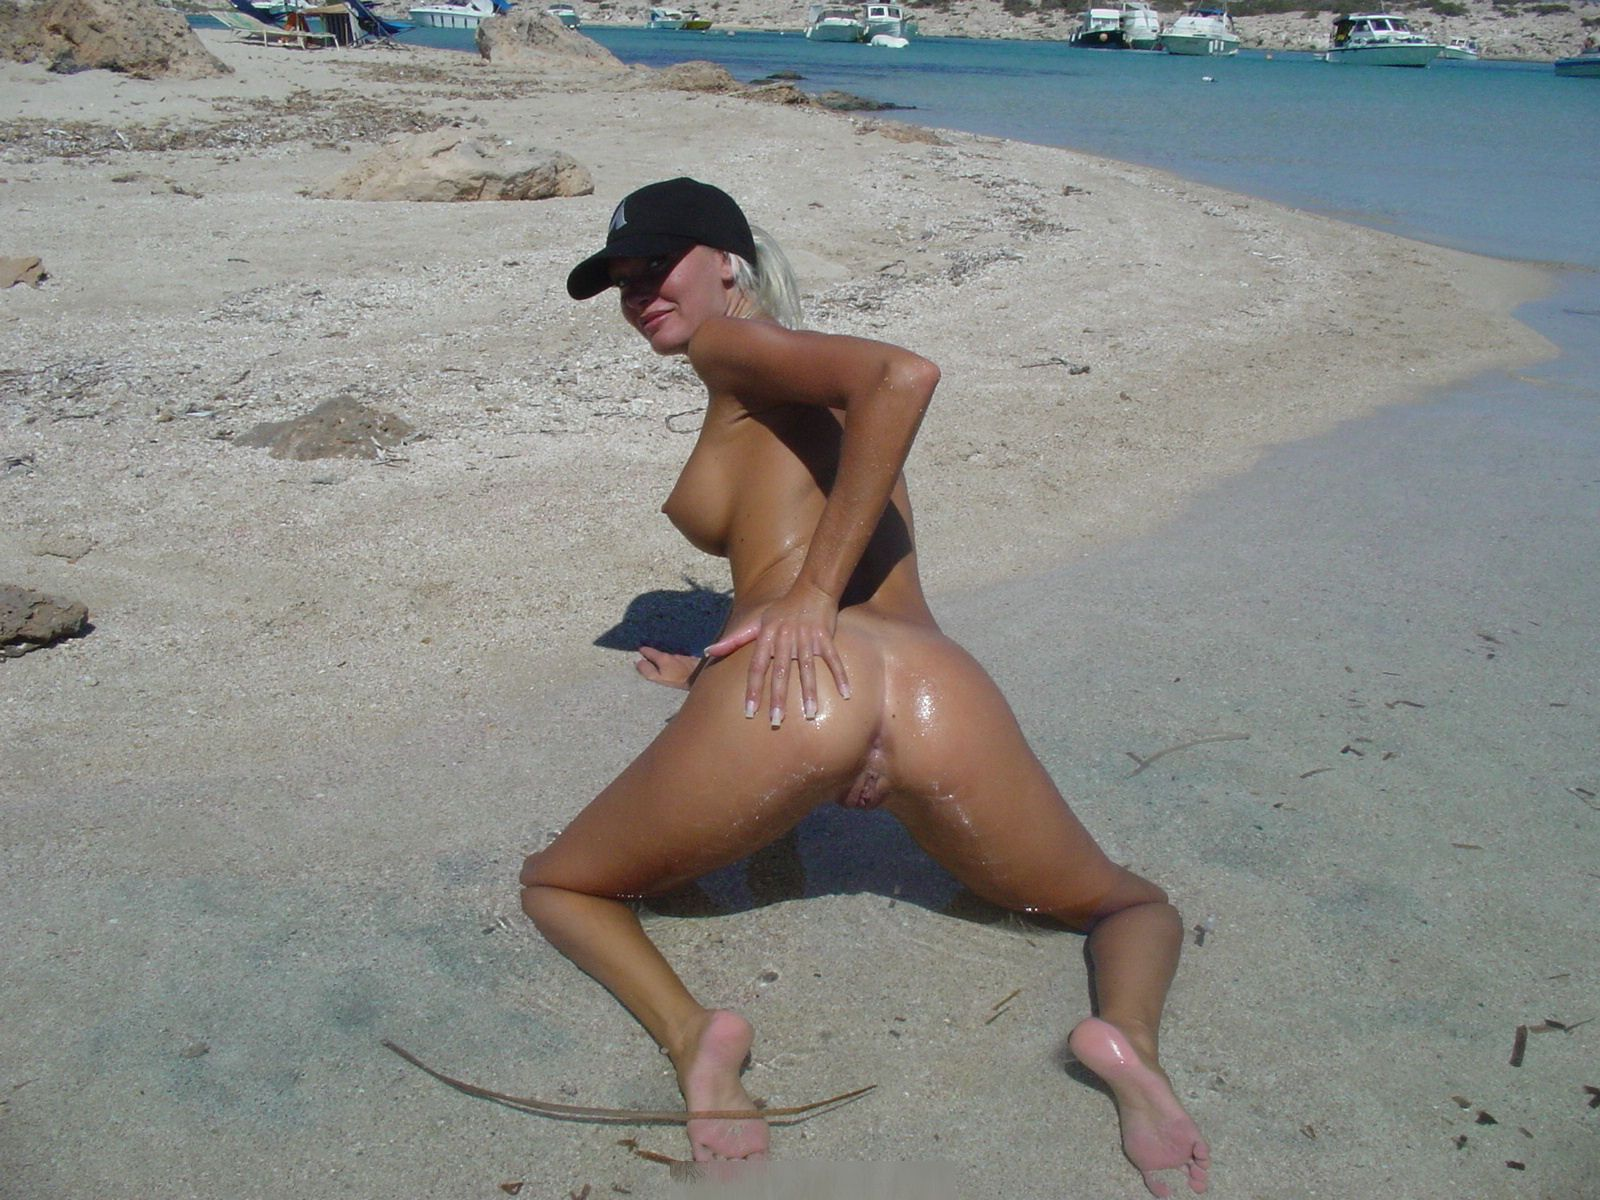 Nude beach butt naked